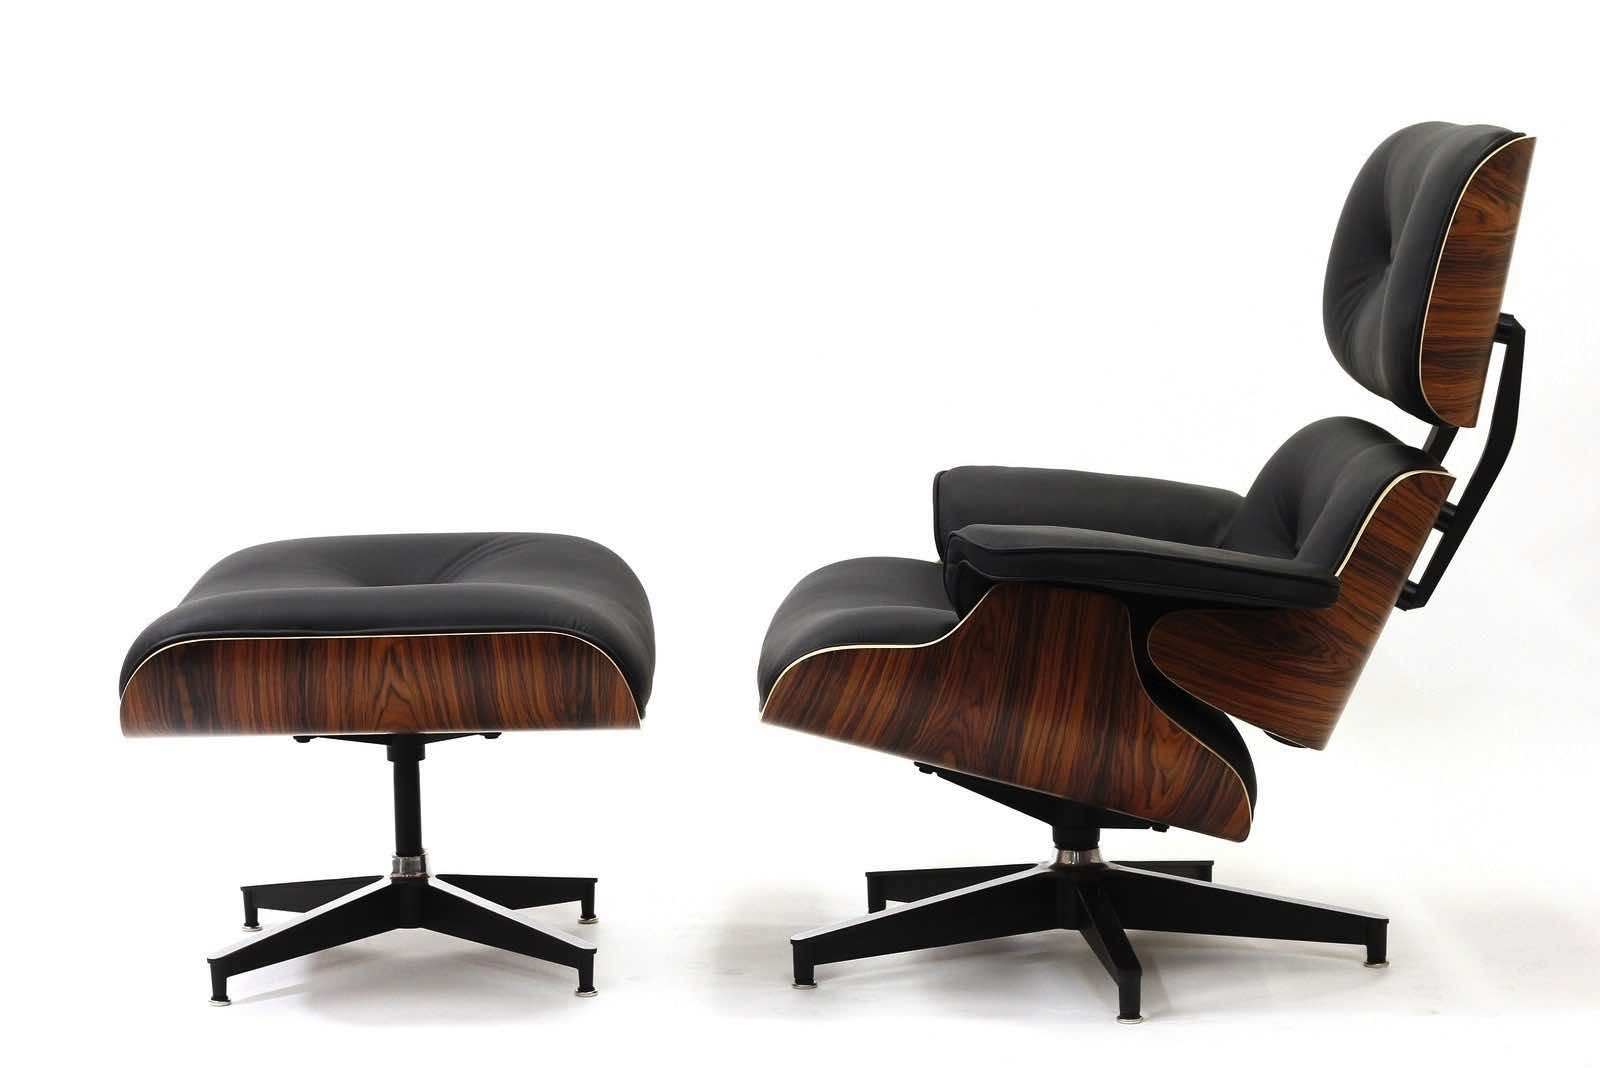 charles-and-ray-eames-lounge-chair-_-ottoman-6477_1